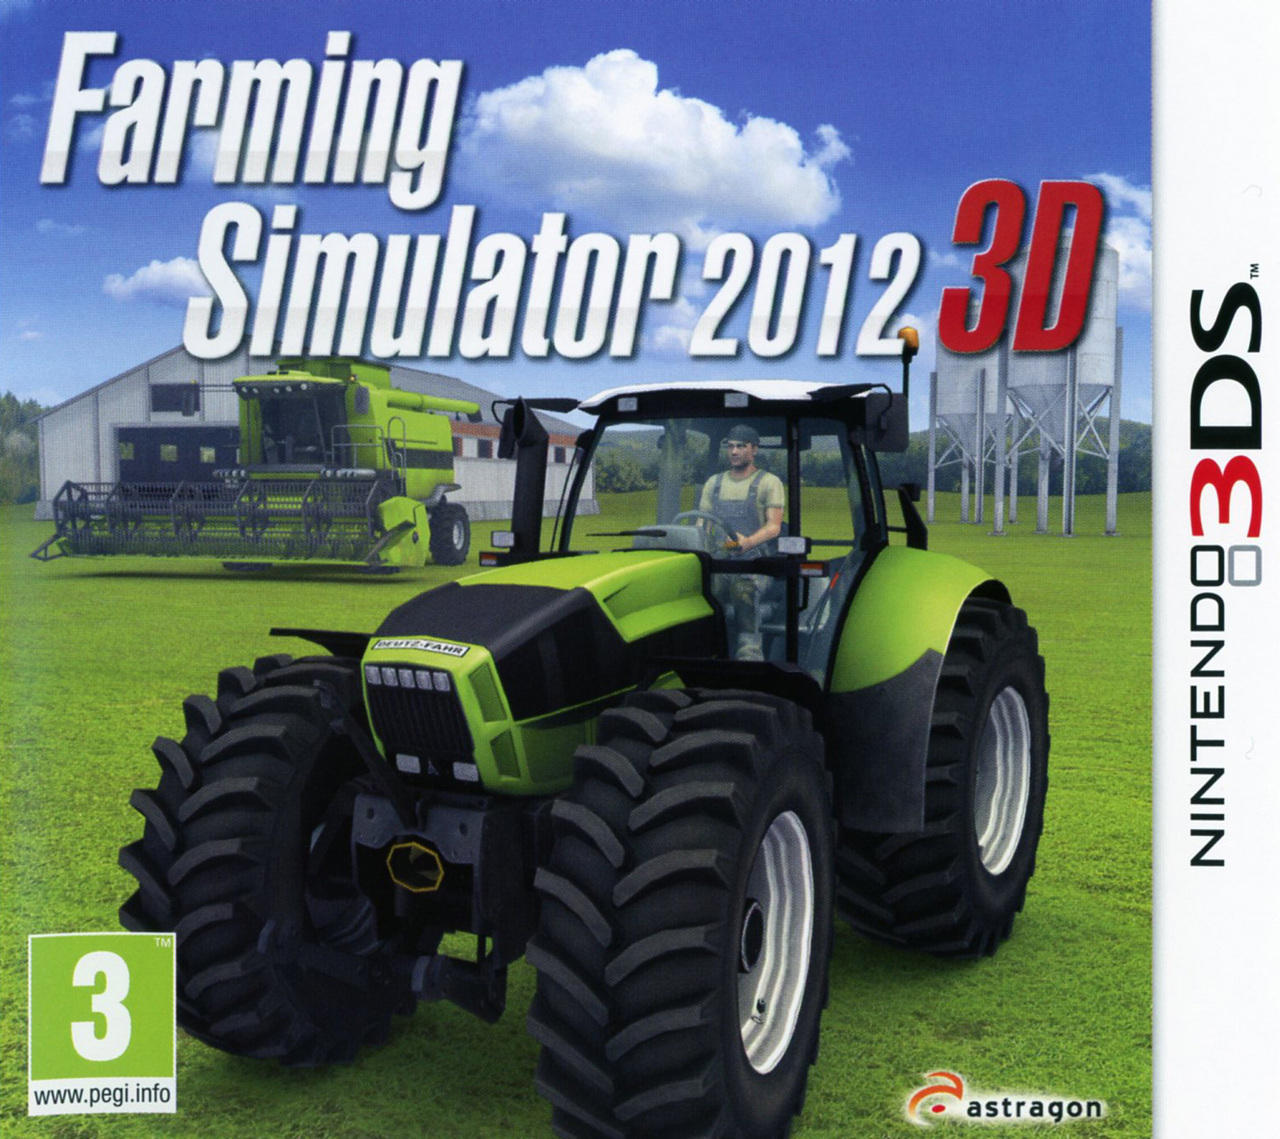 farming simulator 2012 3d sur nintendo 3ds. Black Bedroom Furniture Sets. Home Design Ideas